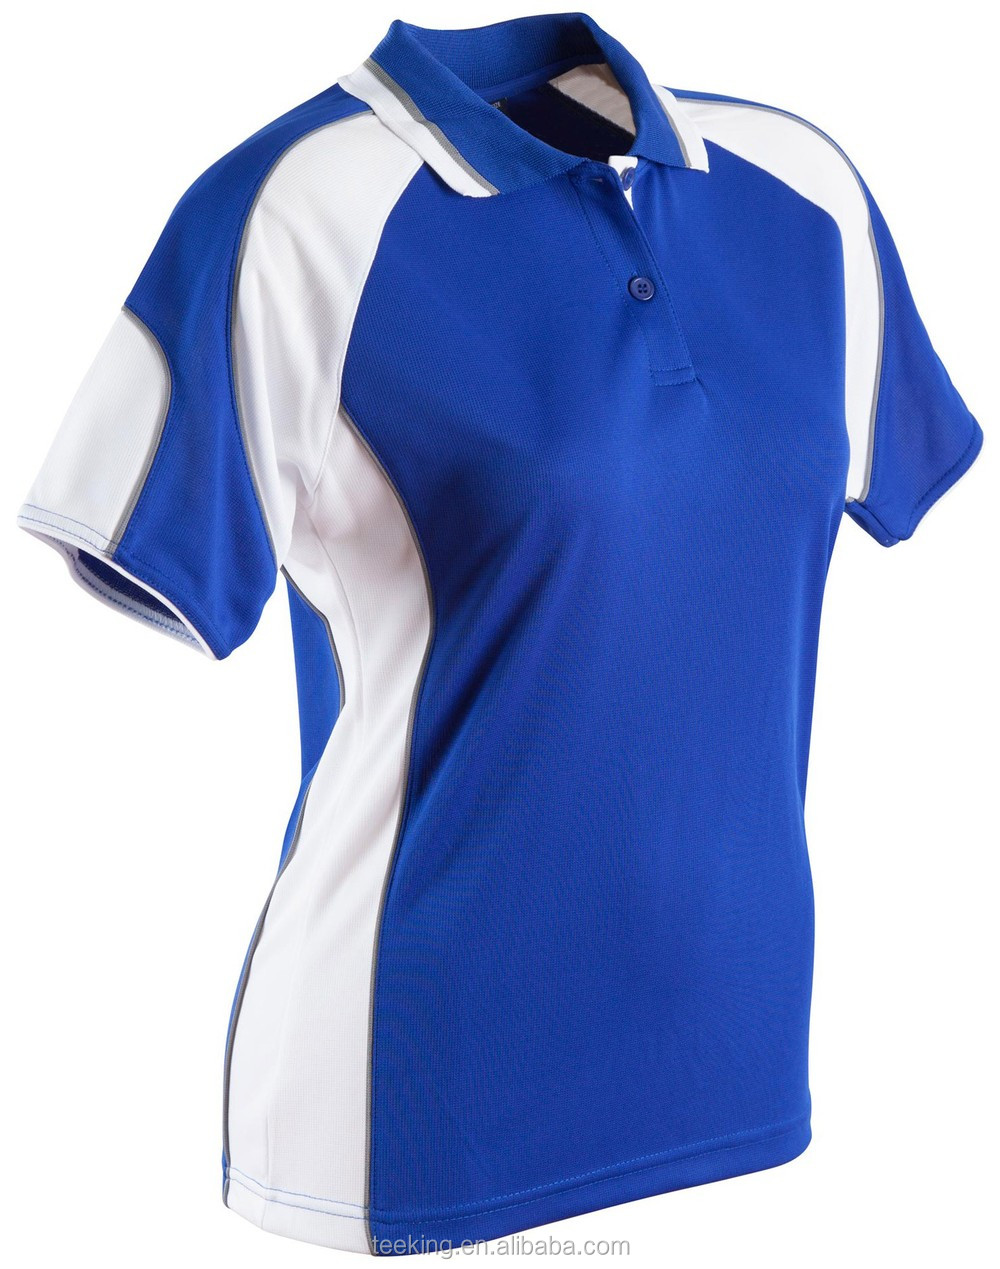 Contrast panels color combination cool dry fit splicing for Polo shirt color combination